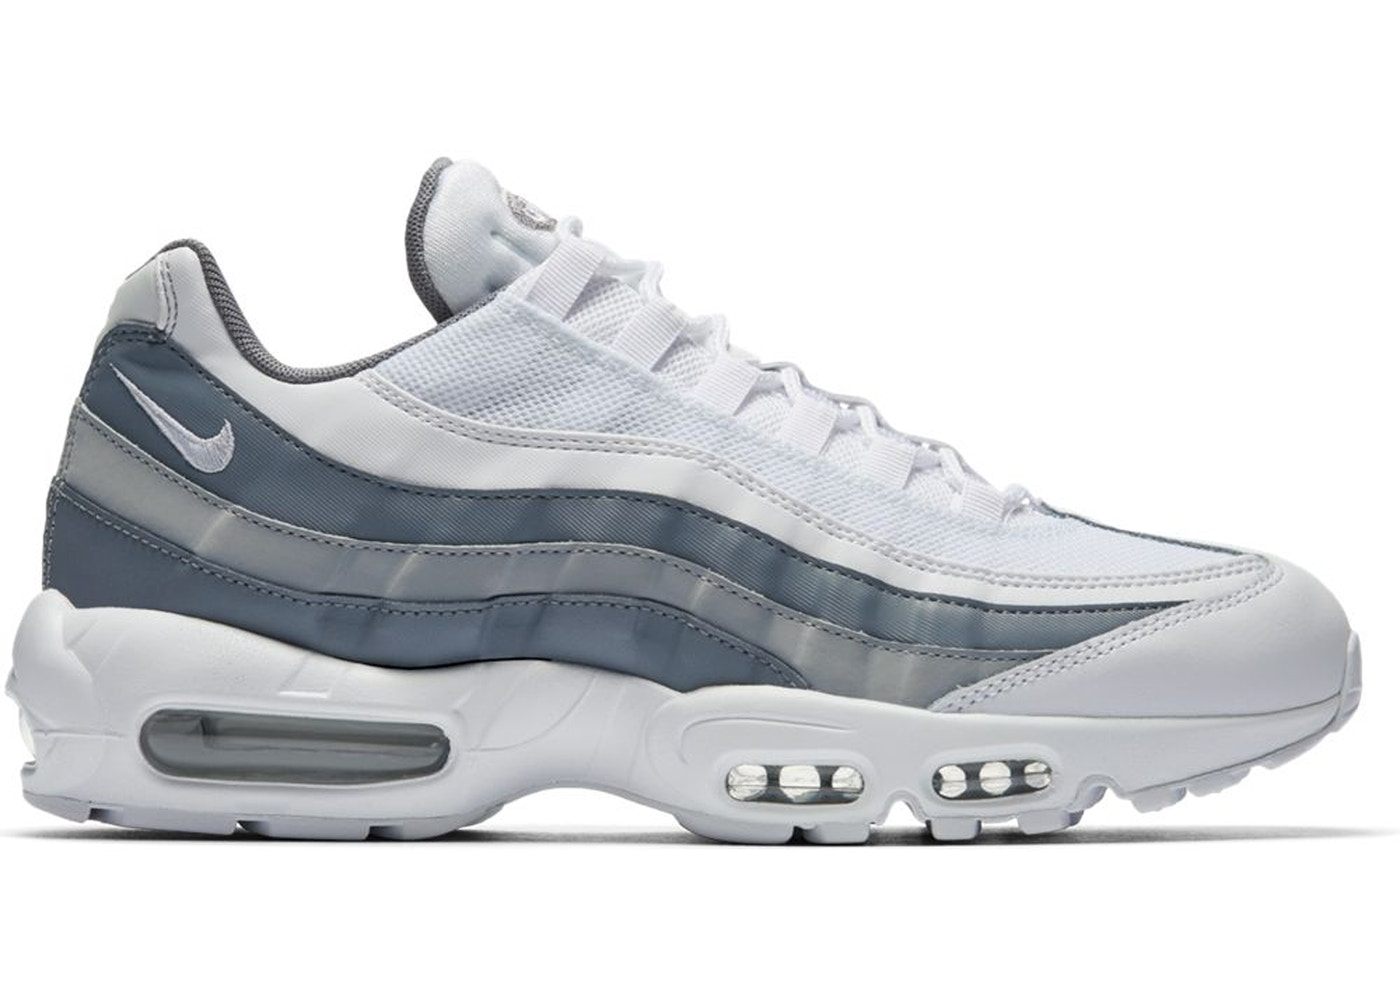 13b7385b7e Sell. or Ask. Size: 12. View All Bids. Air Max 95 White Cool Grey ...